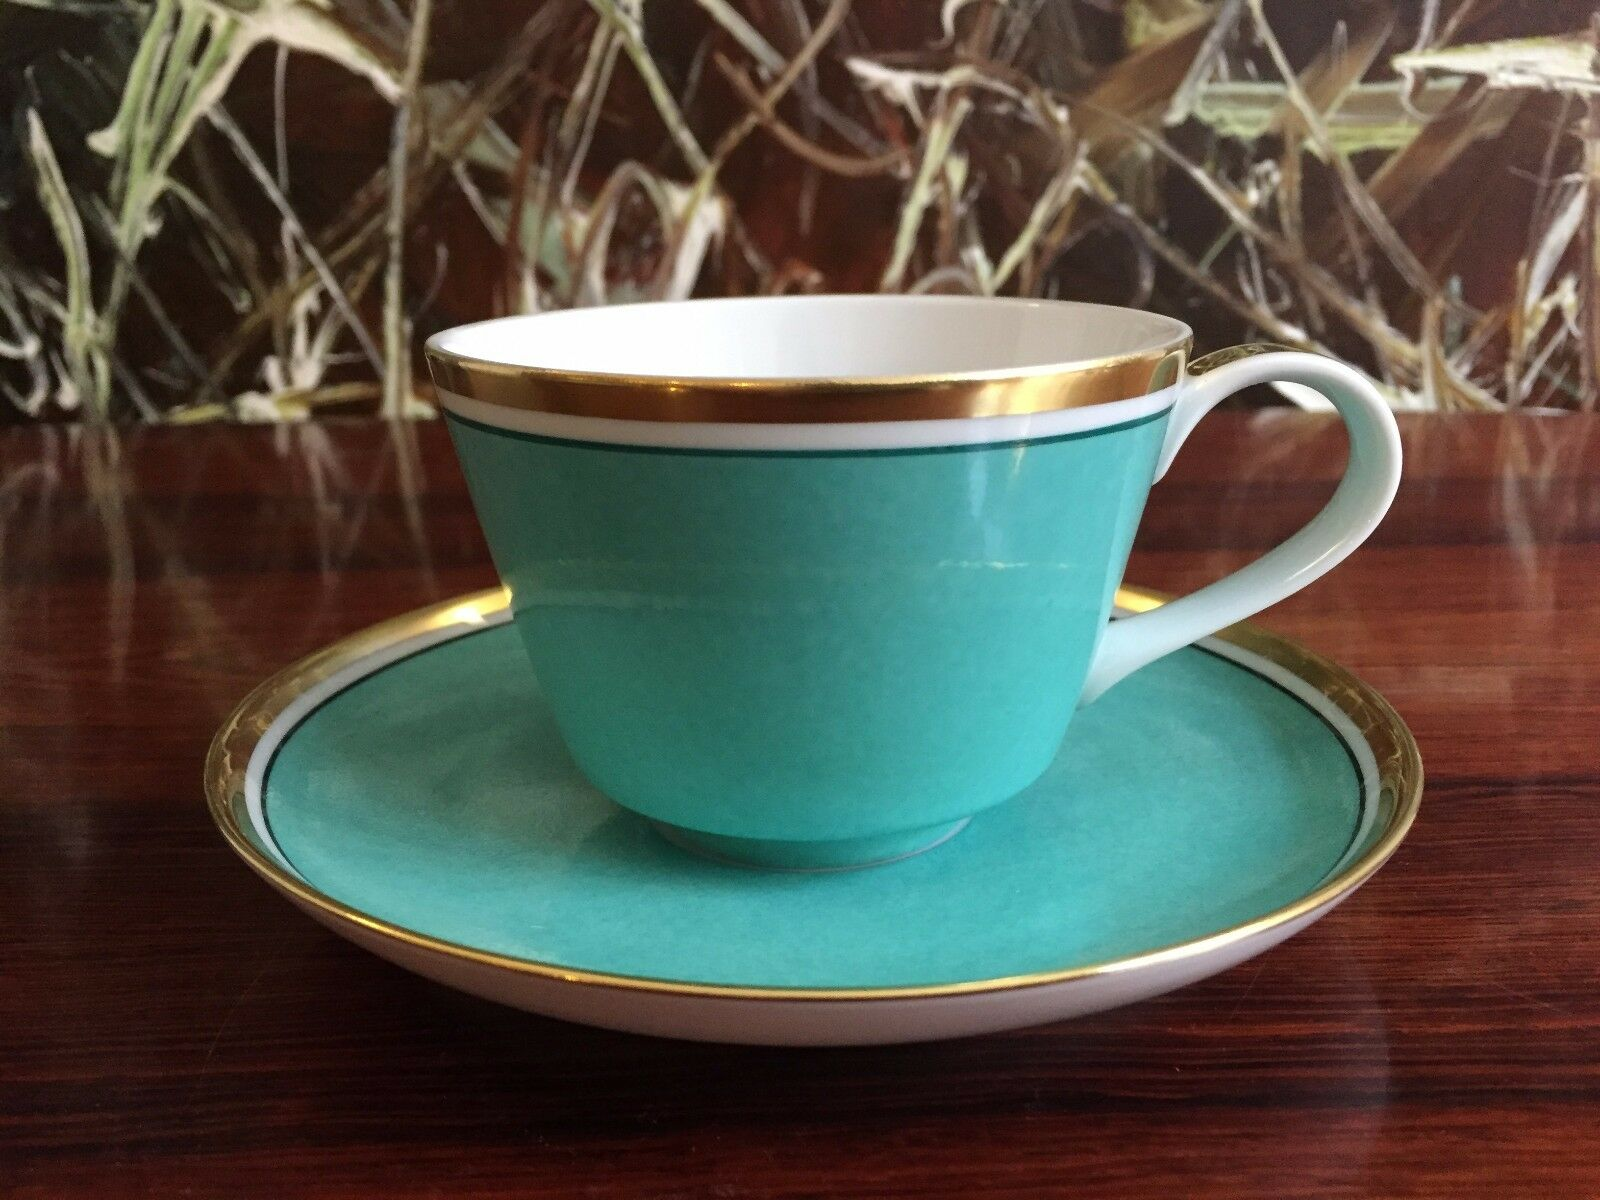 Reichenbach Colour Collection, Coffee Cup with Saucer Turquoise 7.4oz